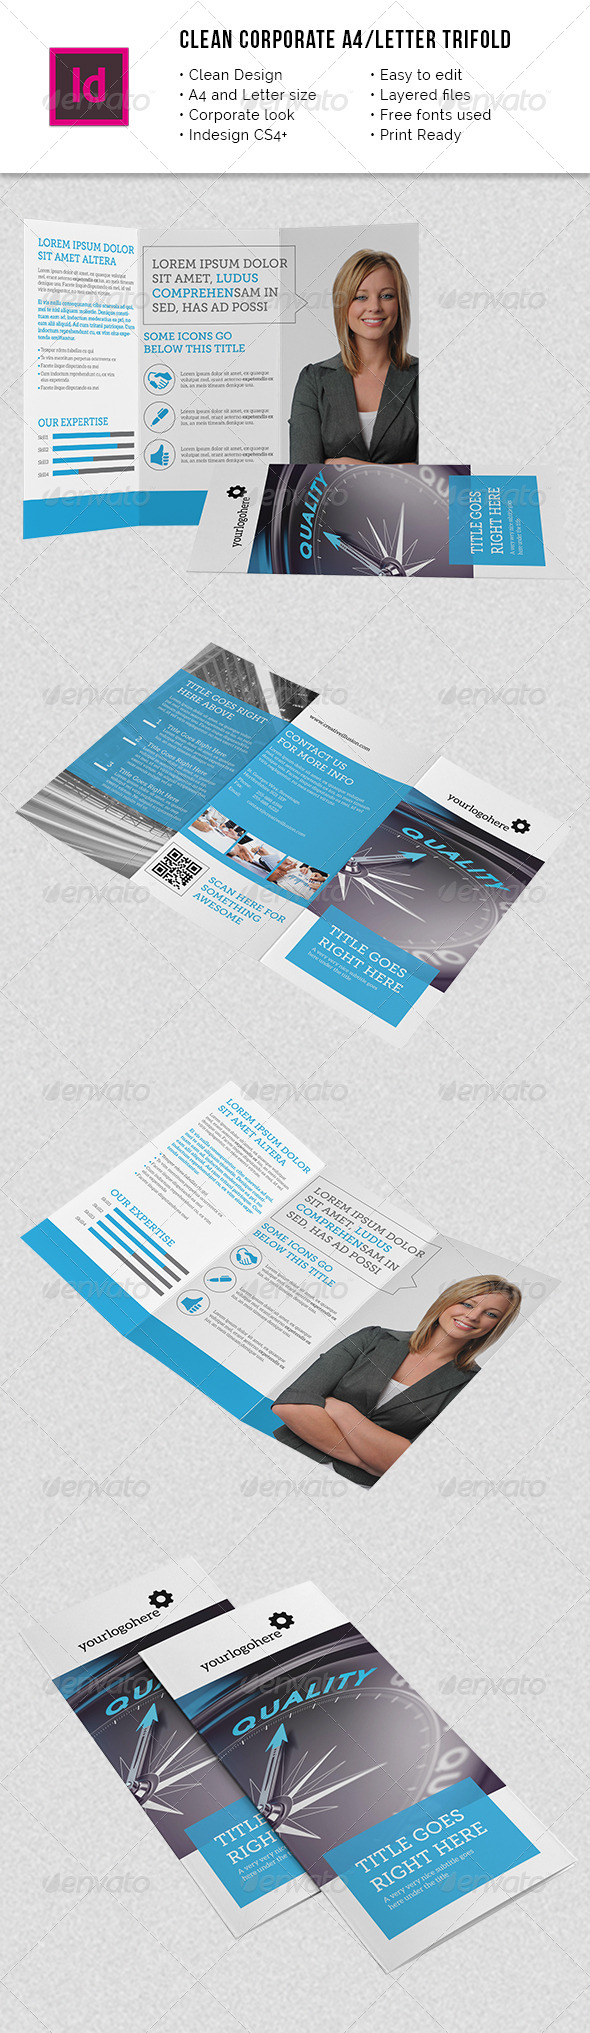 GraphicRiver Clean Corporate A4 Letter Trifold 8607563